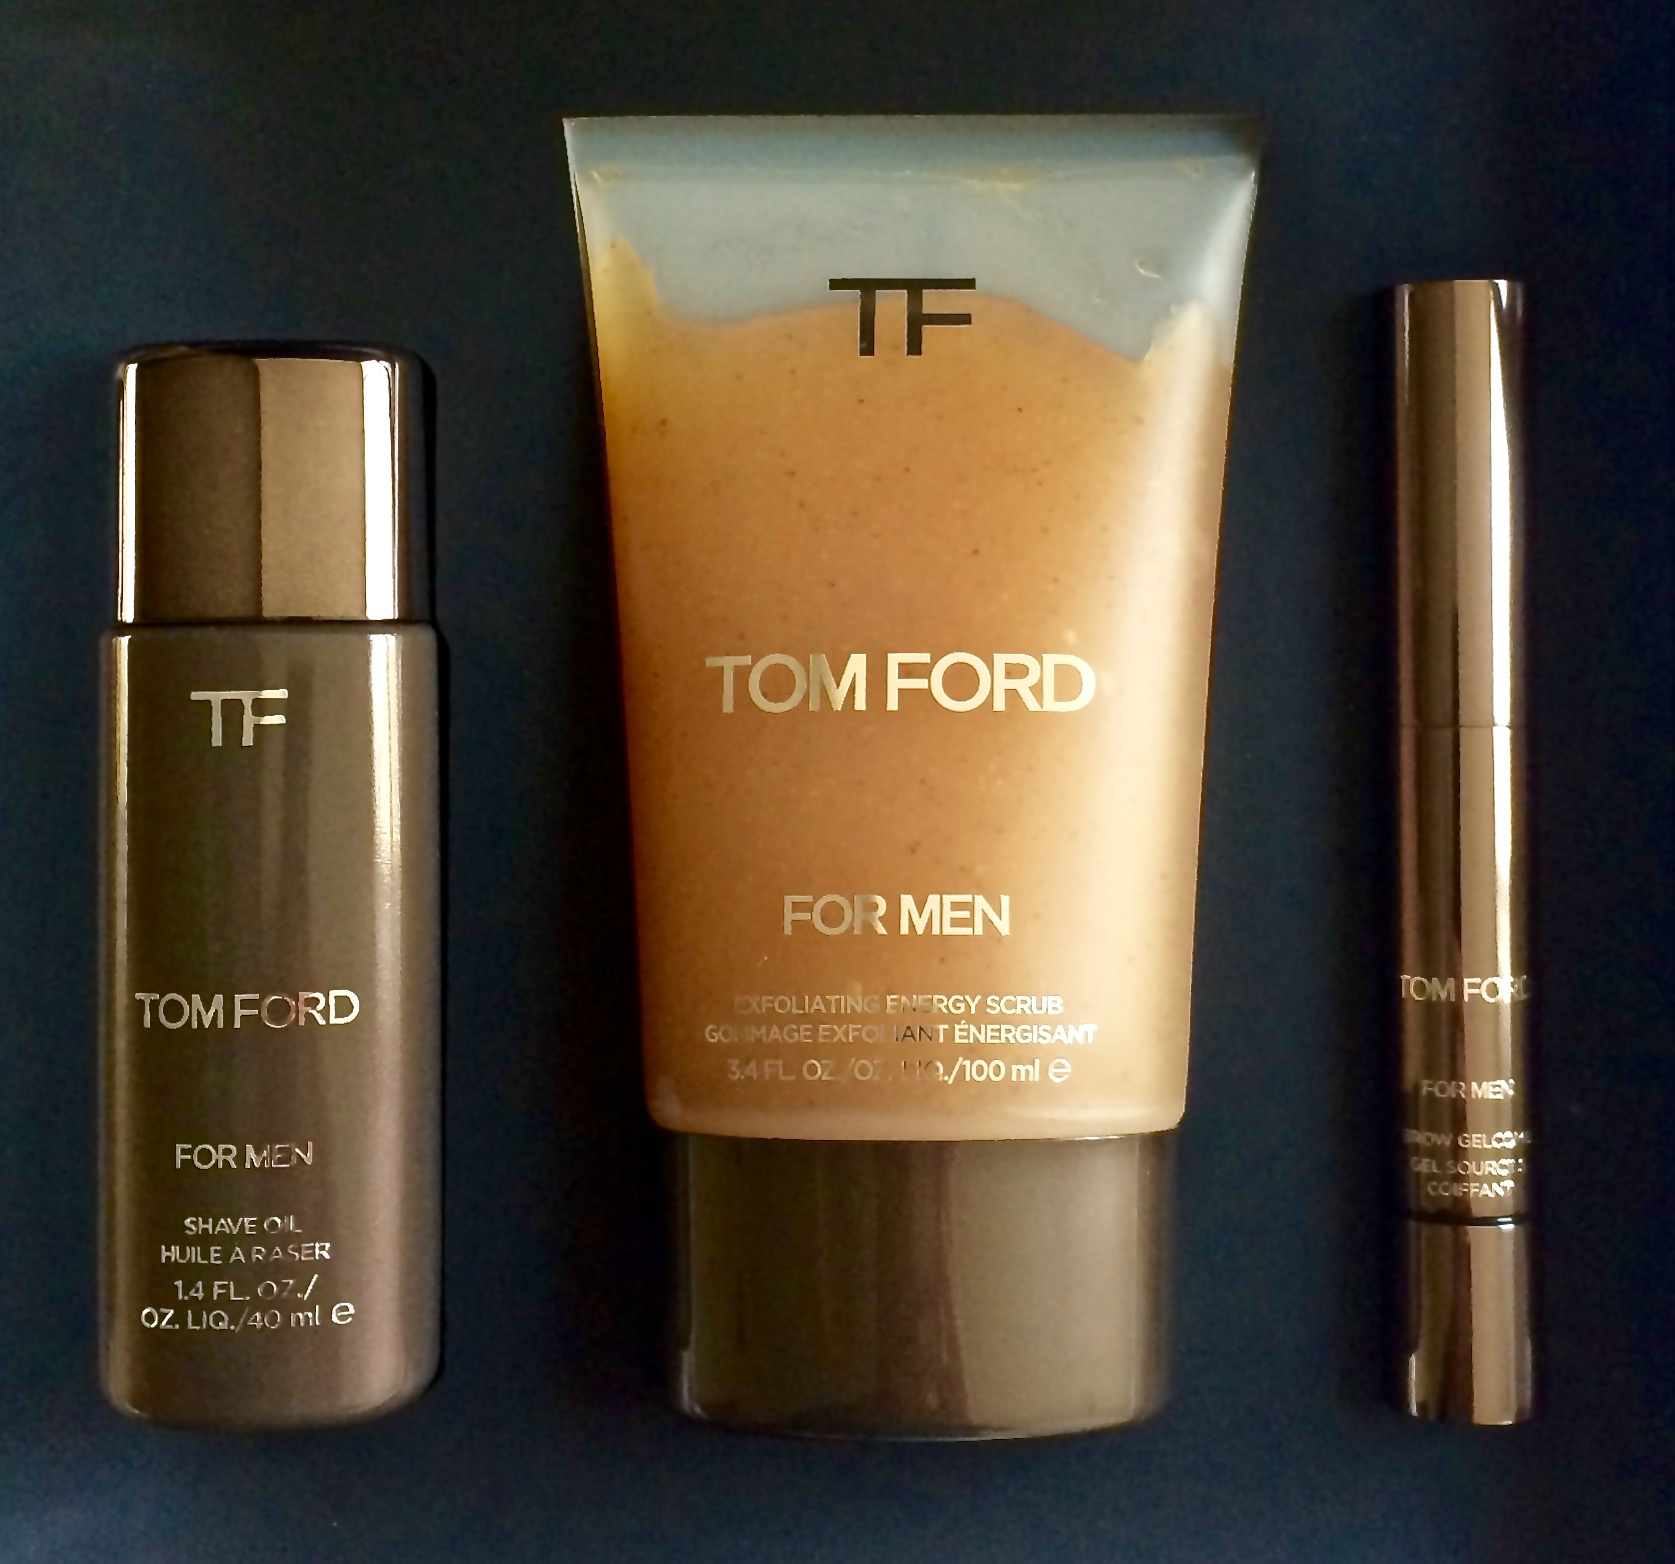 Tom Ford For Men Grooming Range Expands With 3 New Products